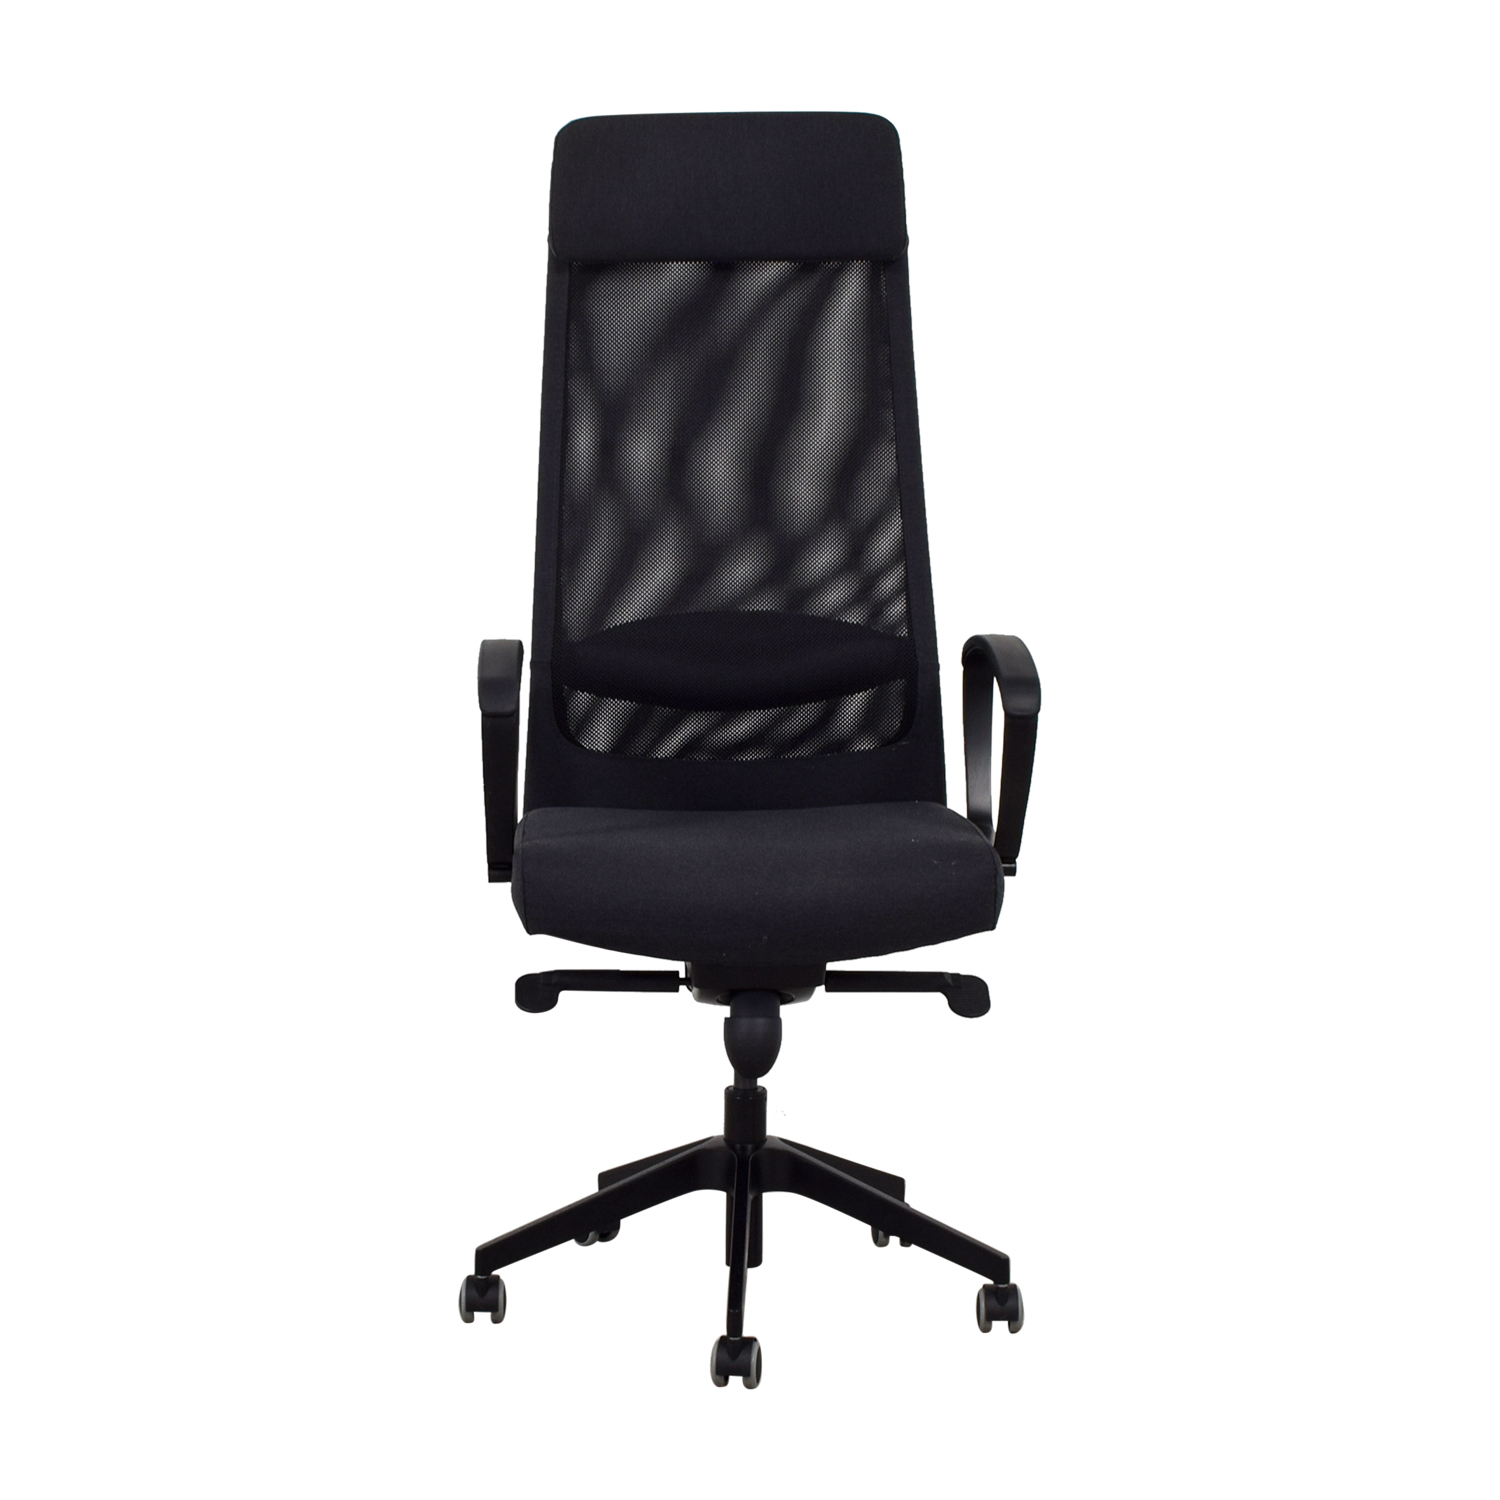 Cheap Office Chairs Ikea cheap office chairs ikea best